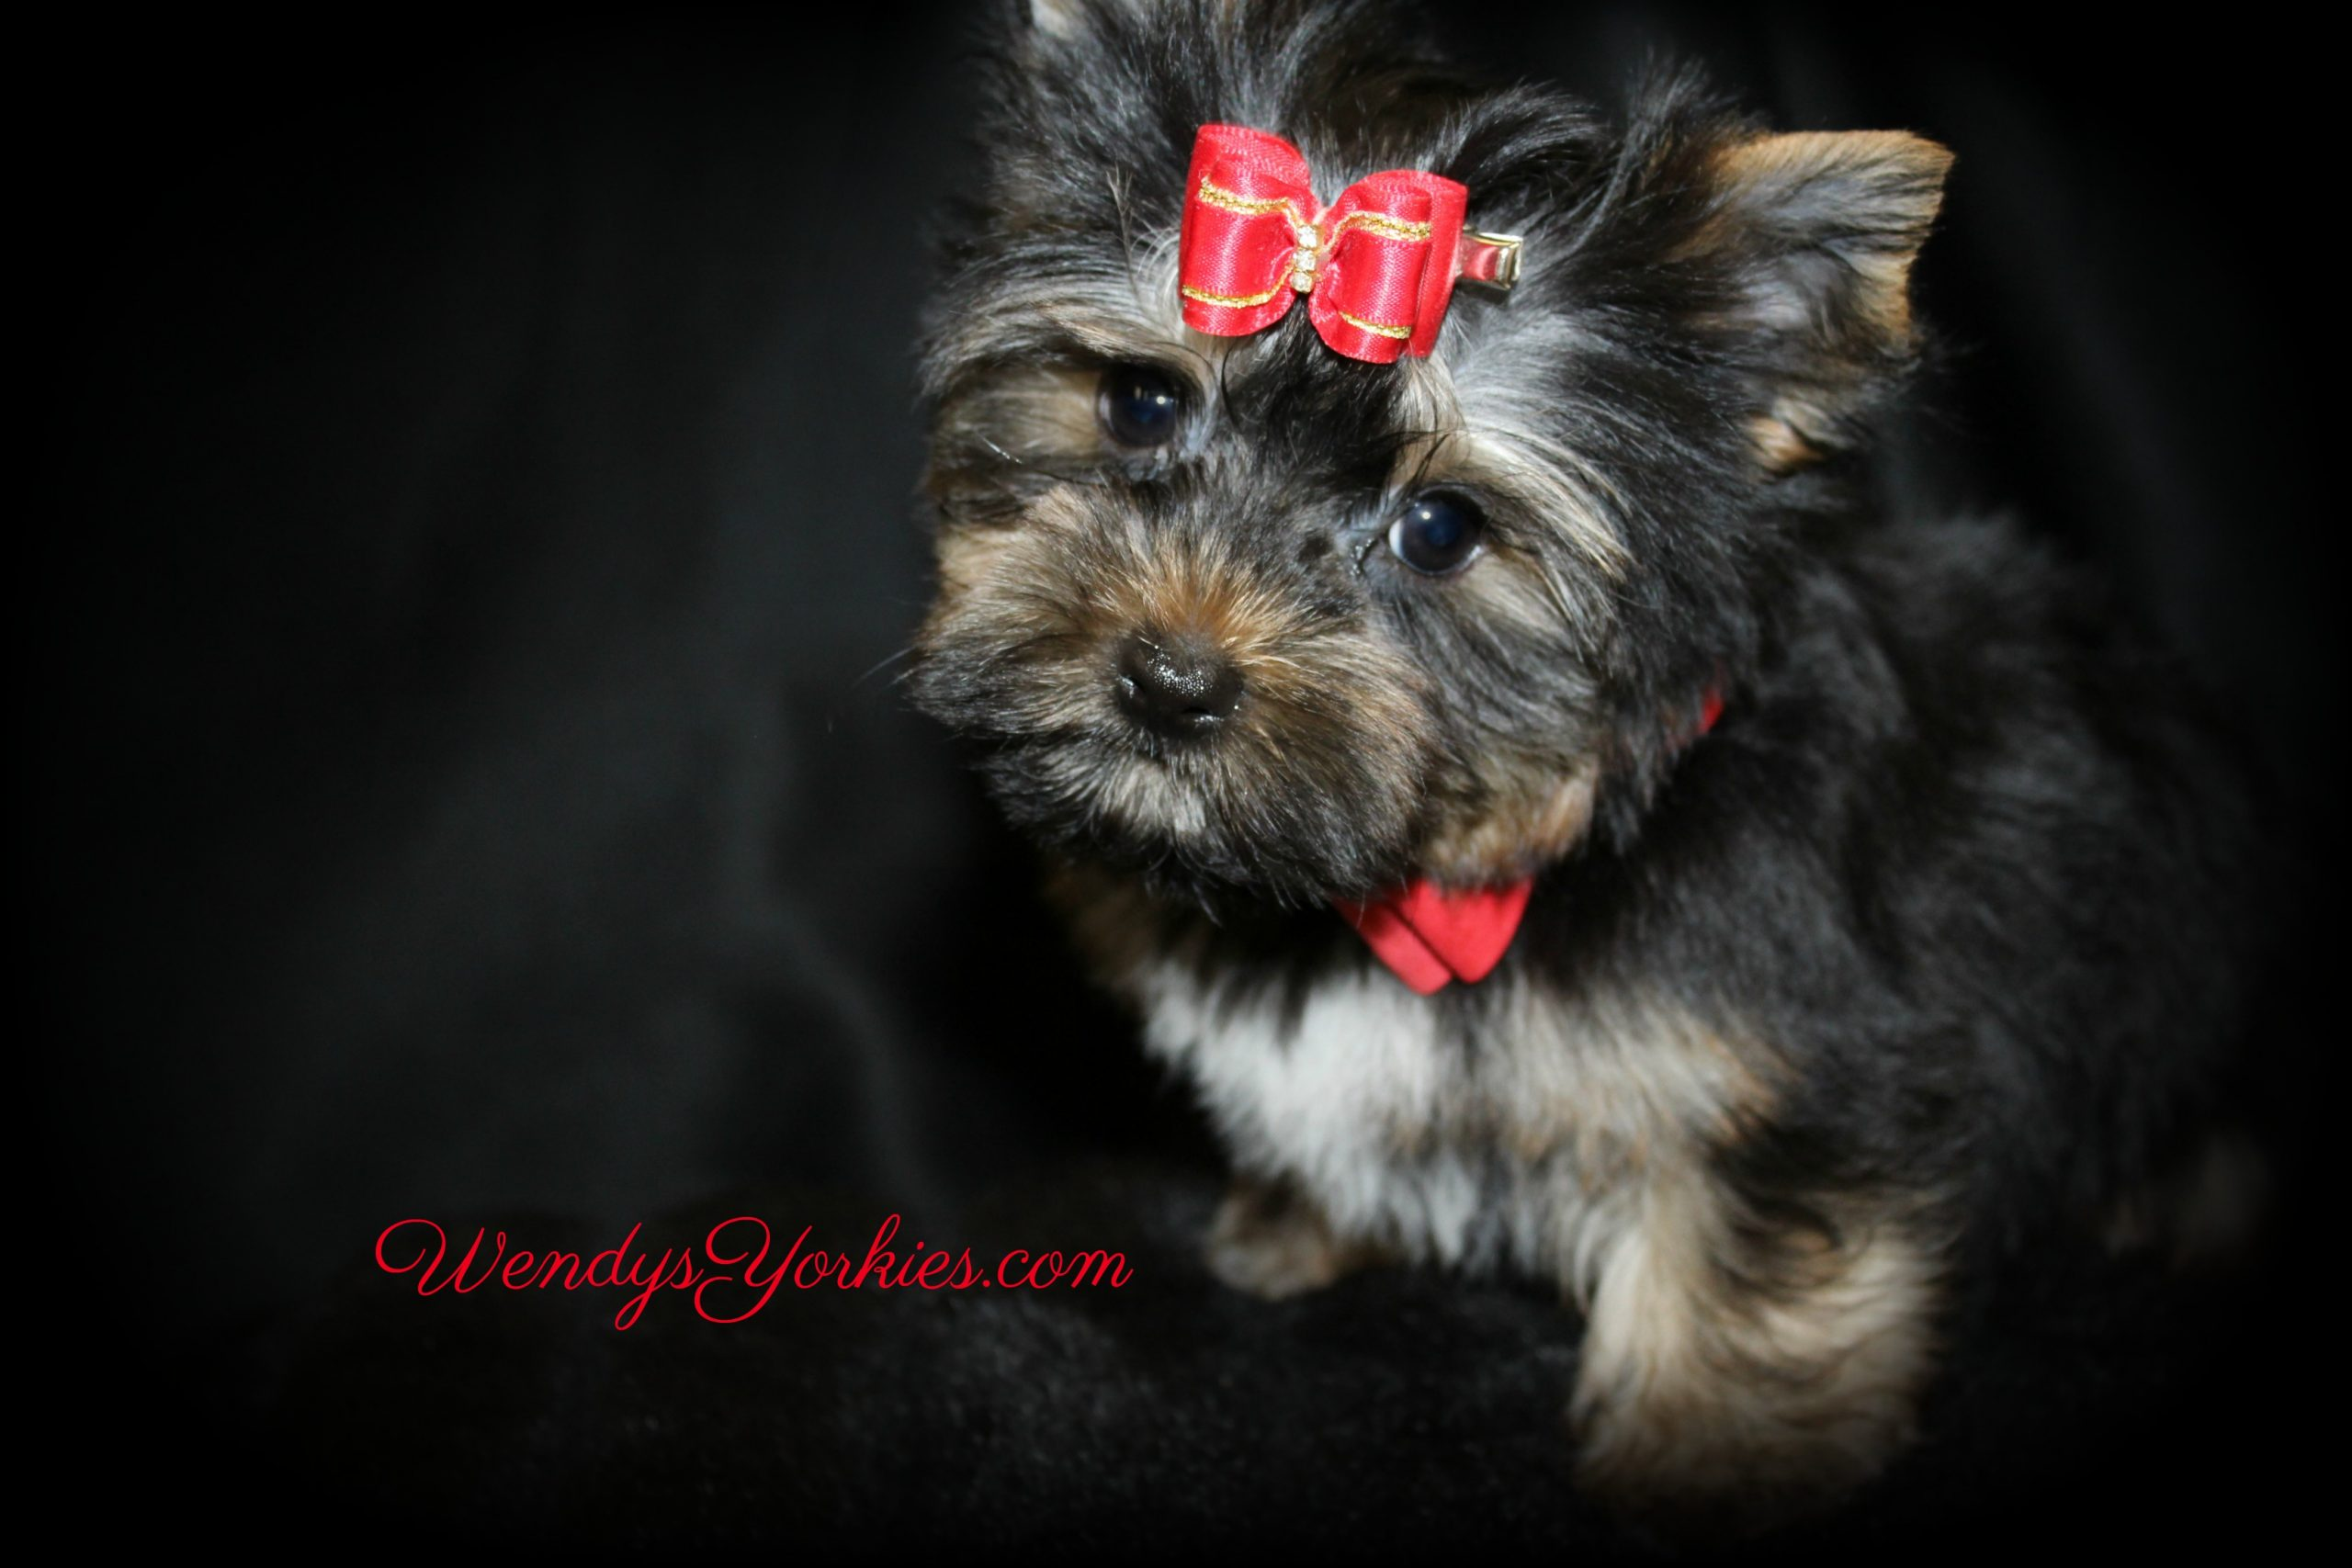 Male Yorkie puppy for sale, Jack, WendysYorkies.com